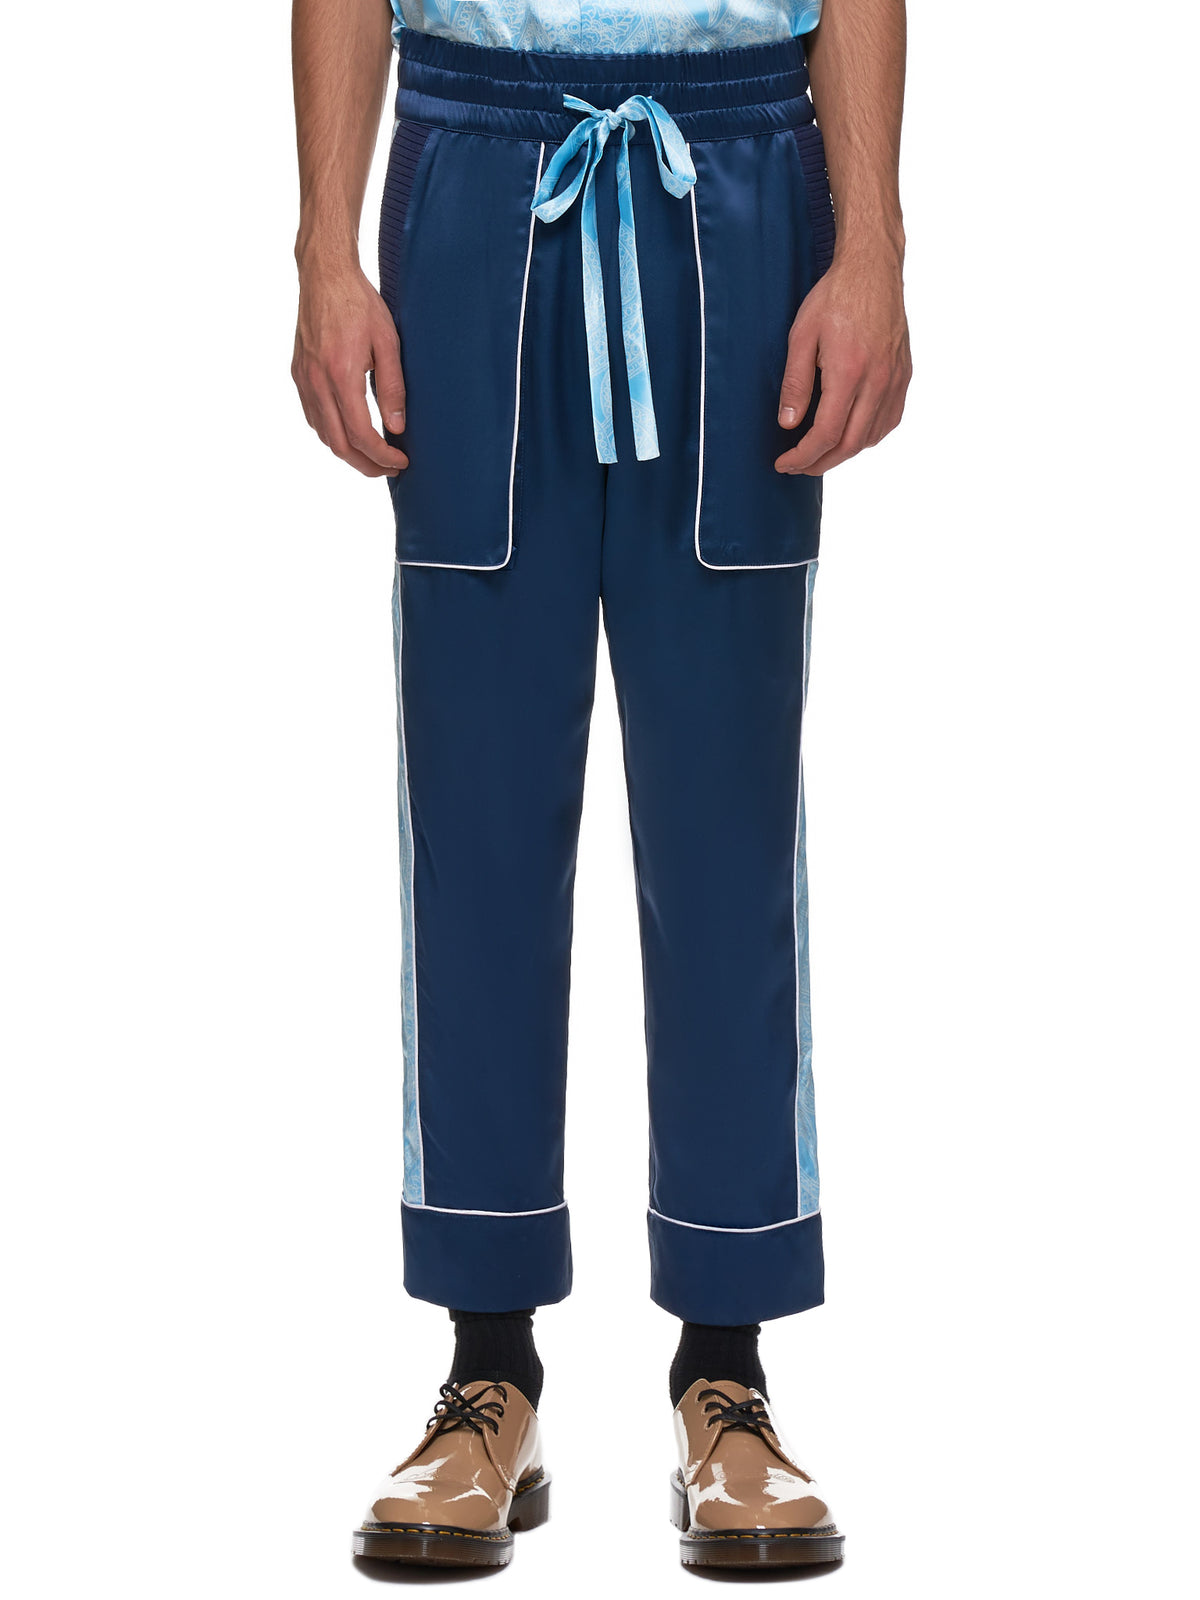 Courtside Trousers (COURTSIDE-TRS-BLUE-PAISLEY)